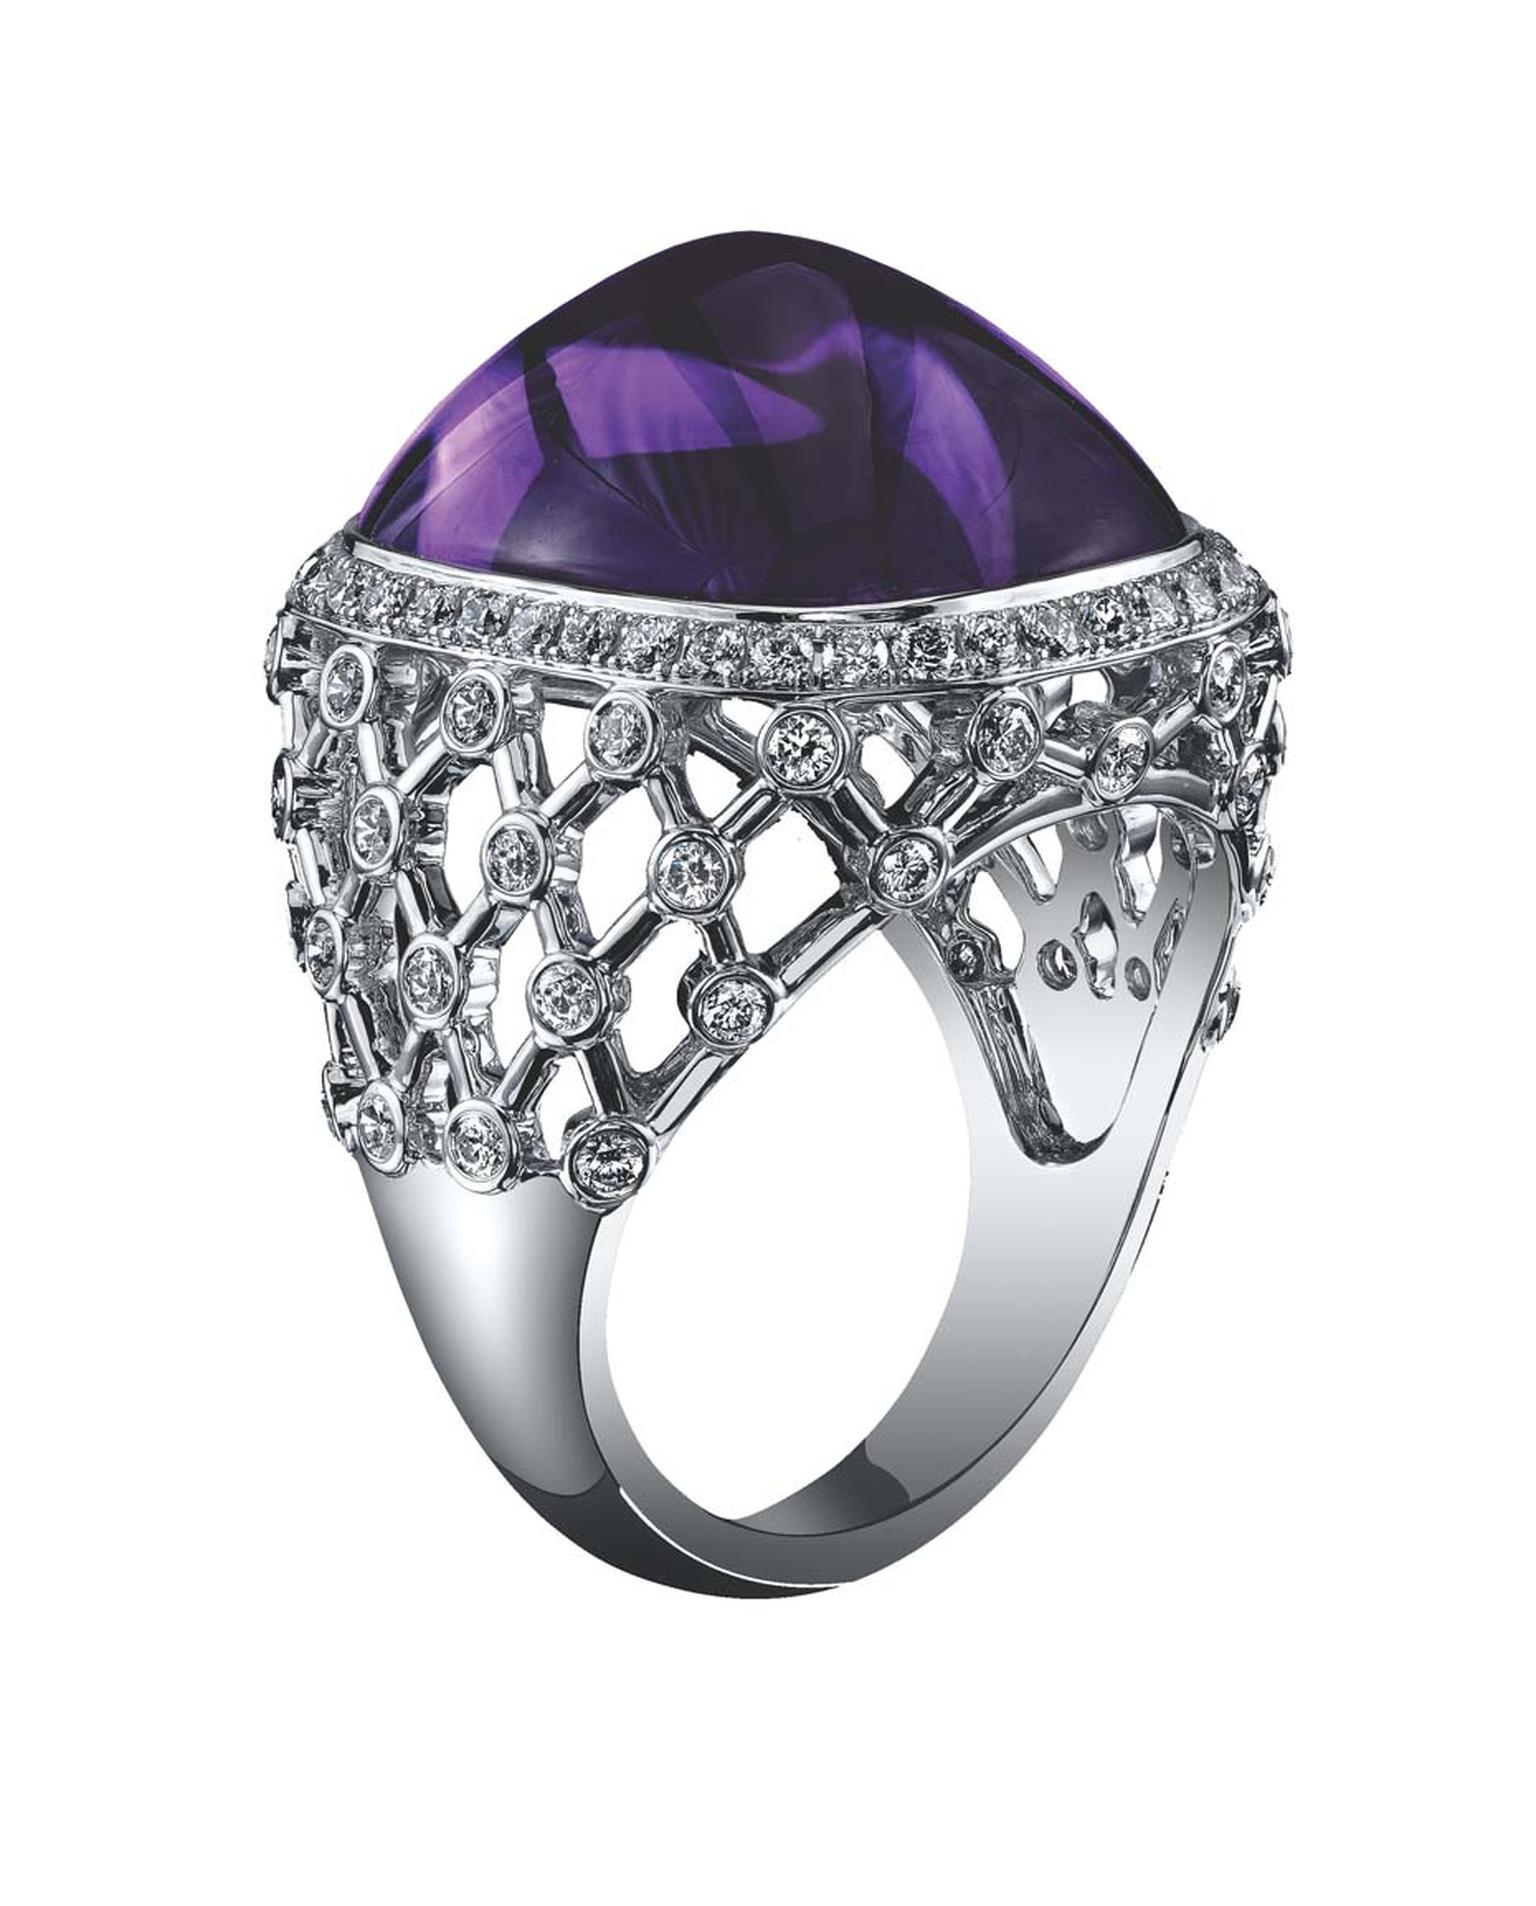 Inspired by its royal connotations, amethyst was the first gemstone Robert Procop and Brooke Shields settled on.